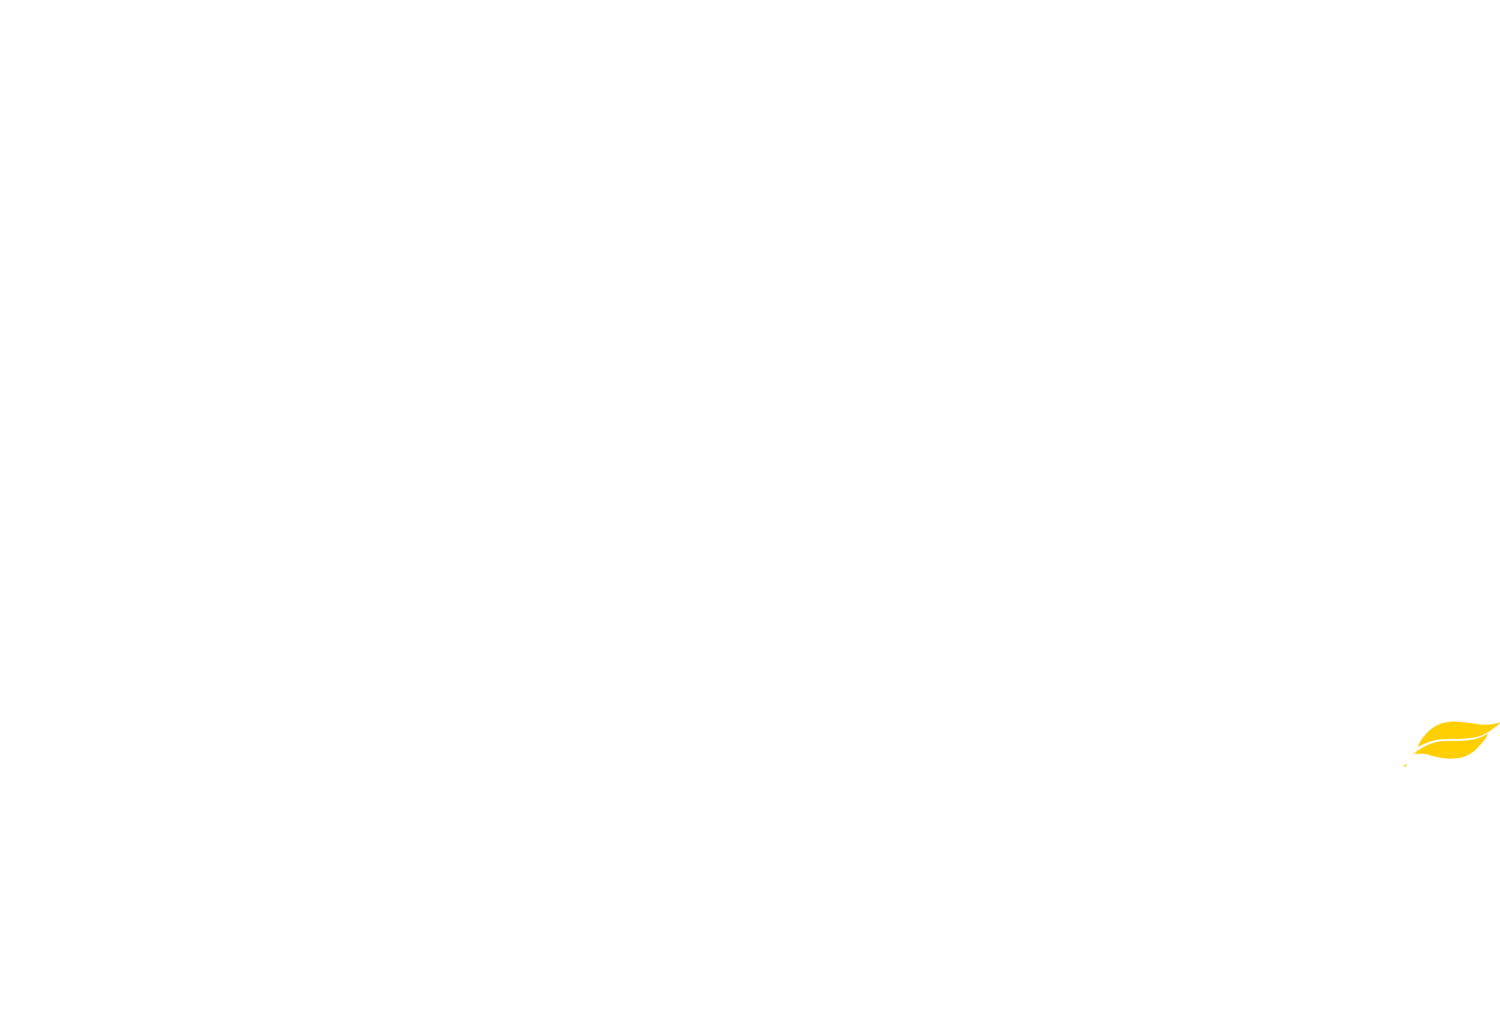 Yellowleaf Creek Mill